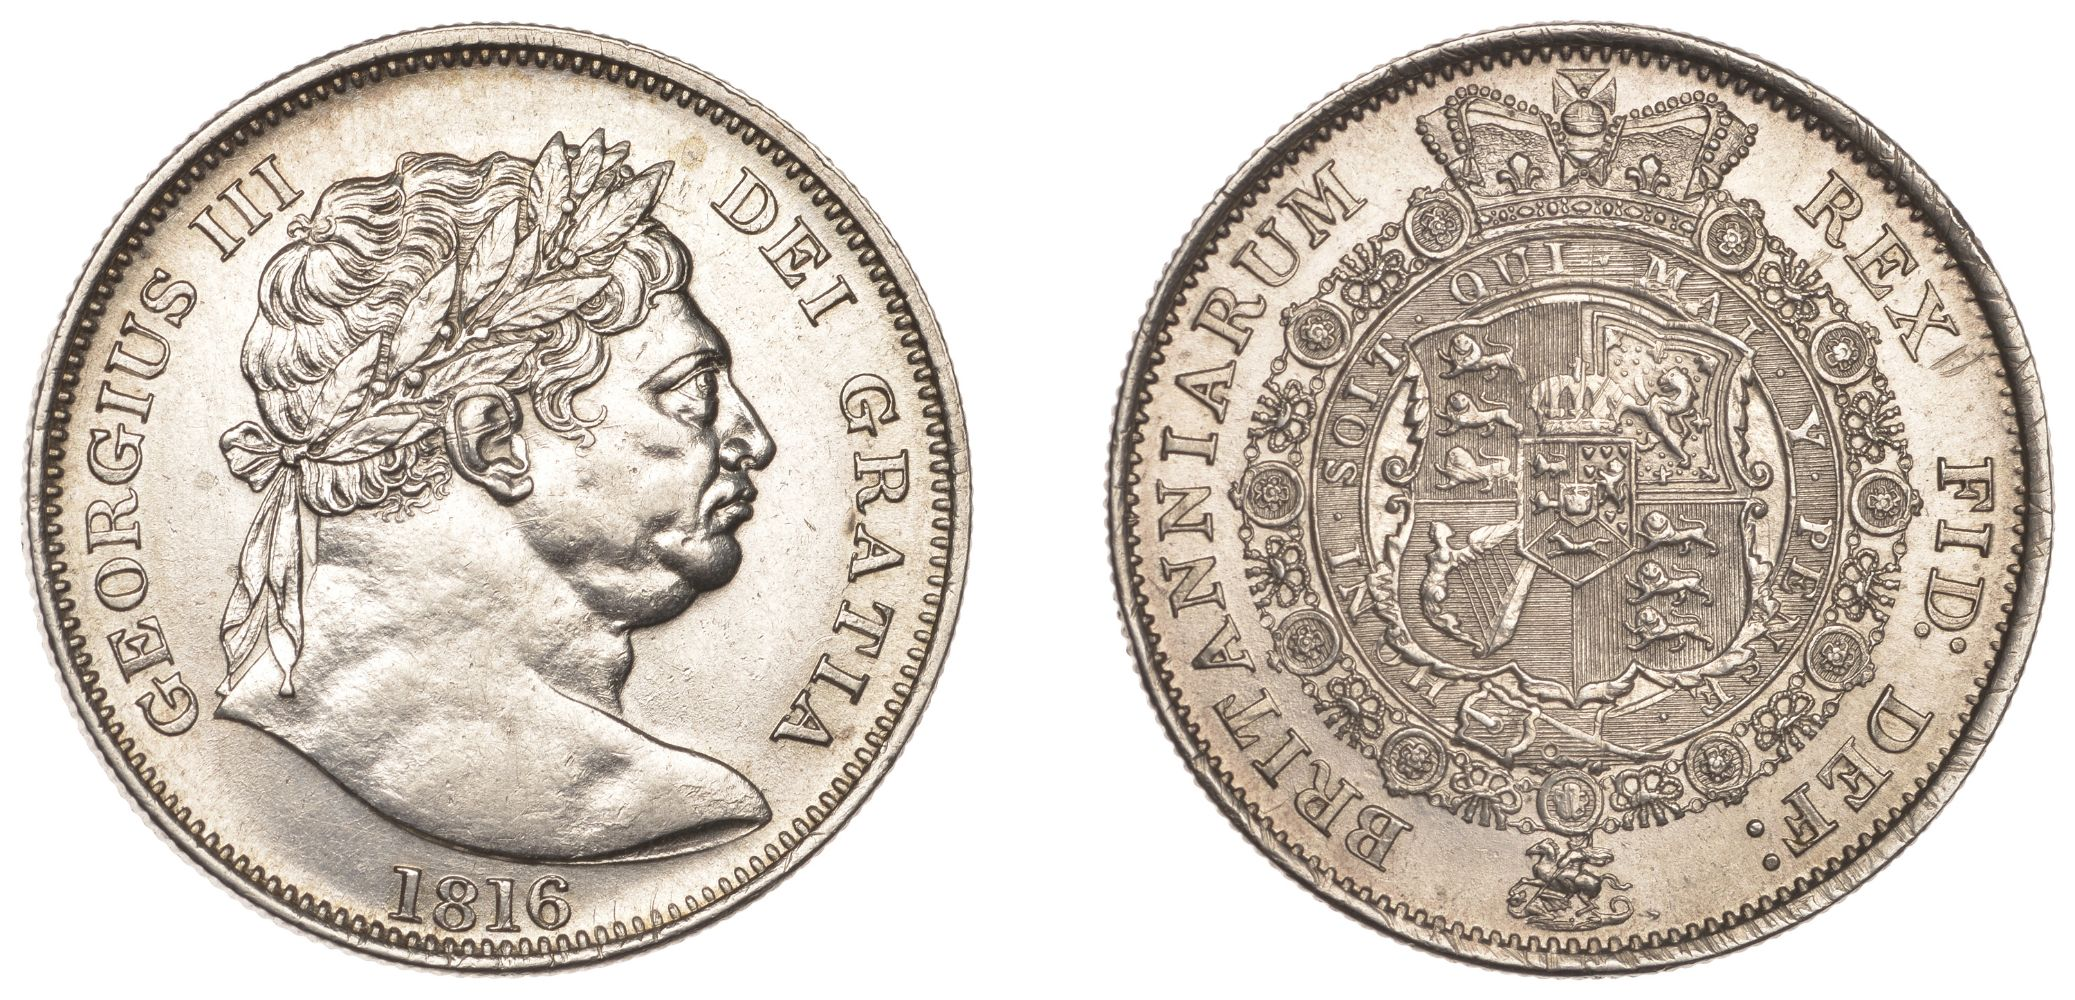 Coins, Tokens and Historical Medals